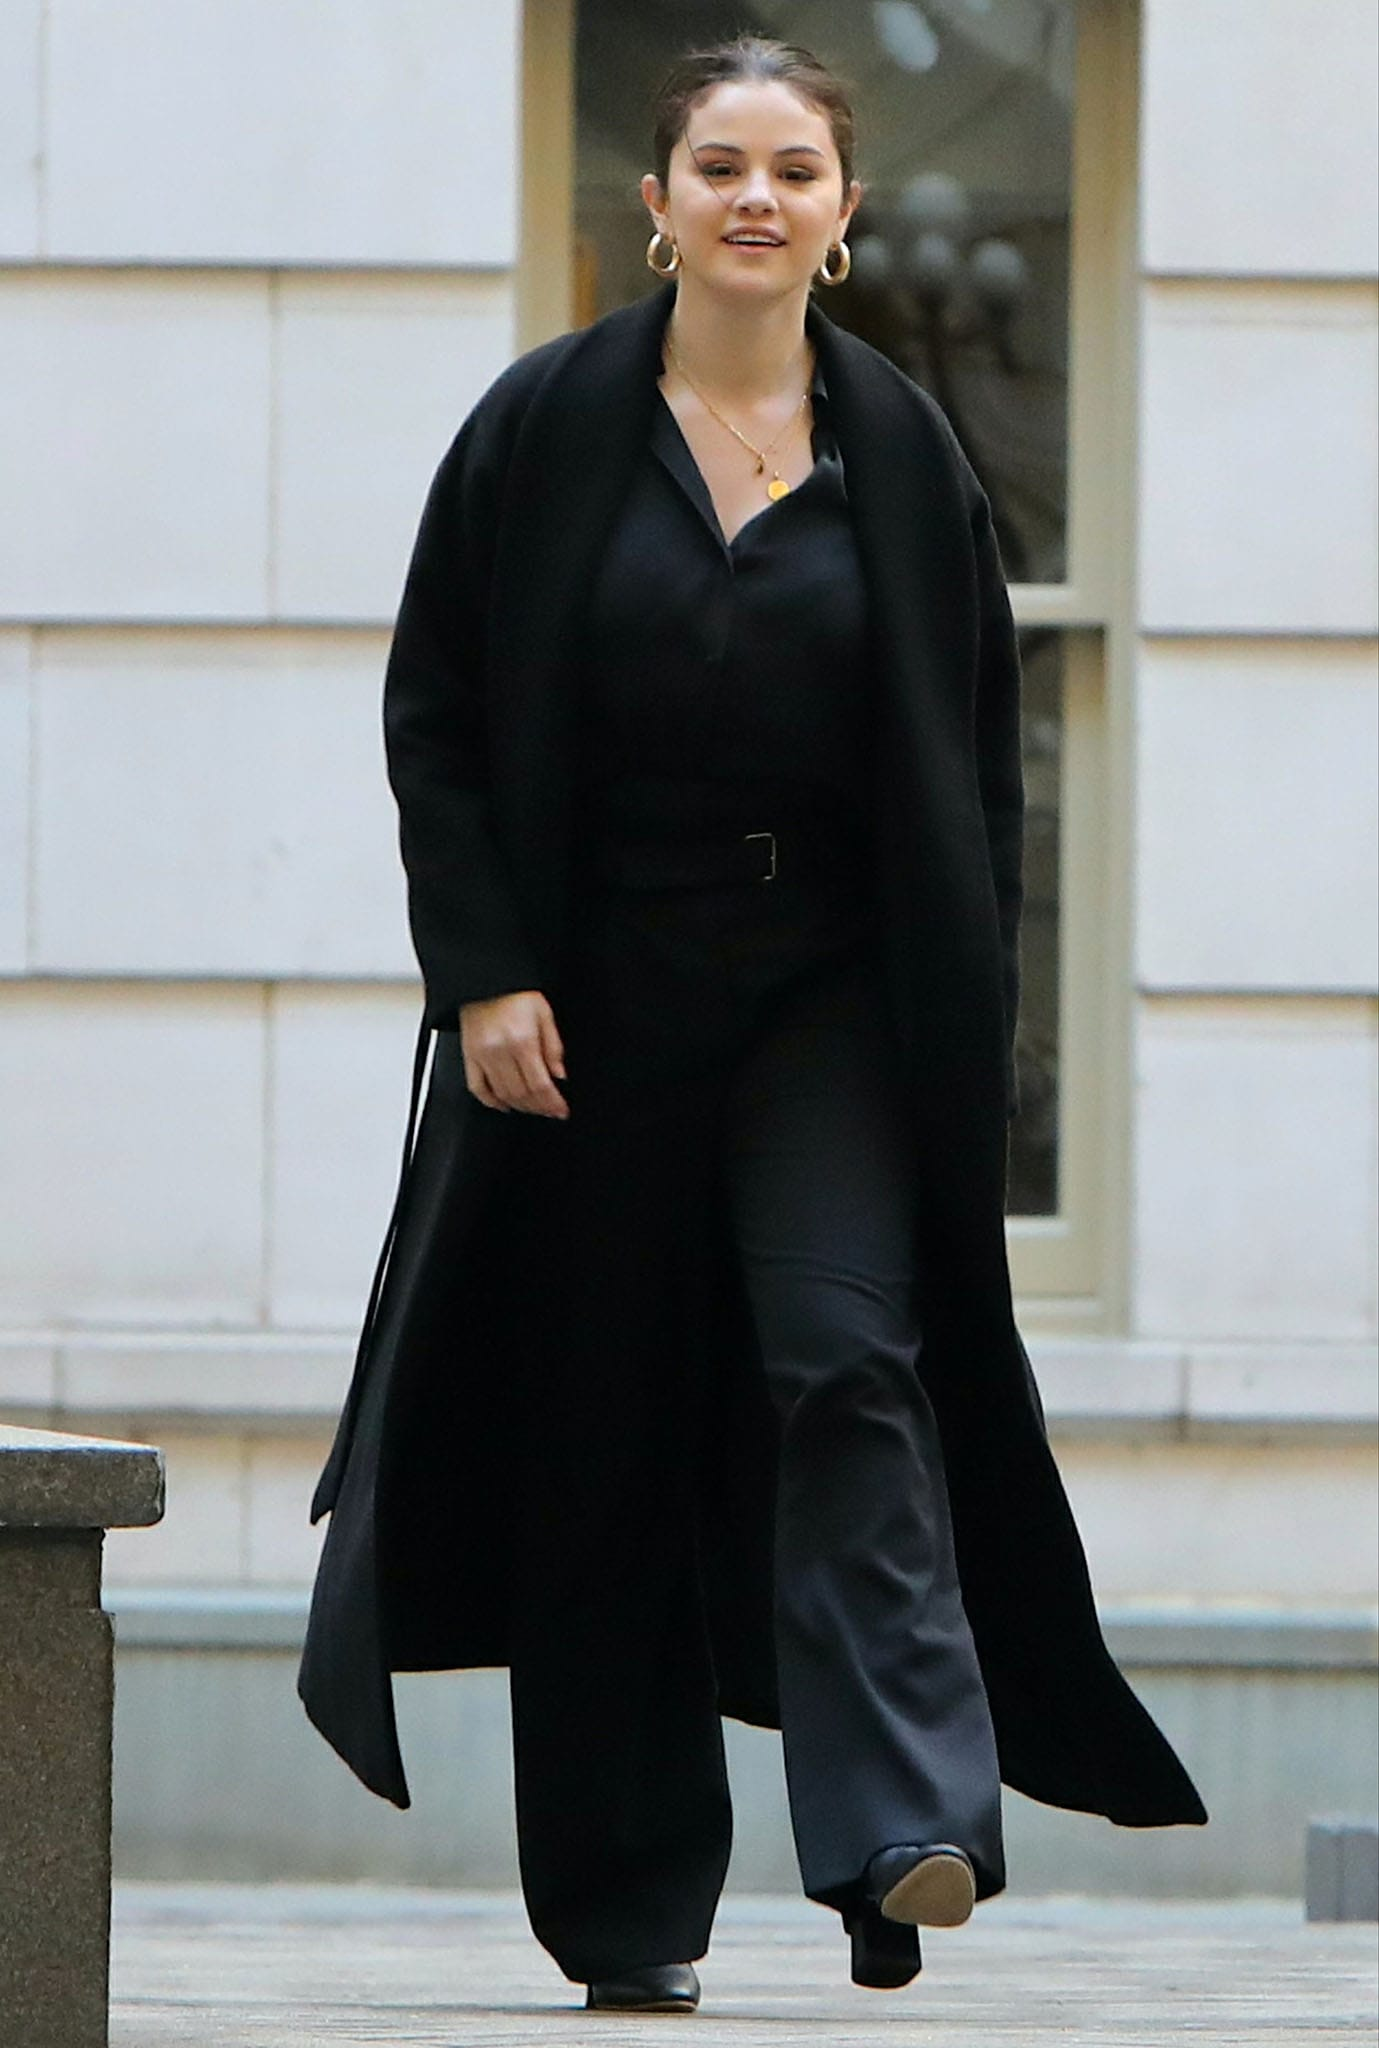 Selena Gomez wears a black coat over a black blouse tucked into a pair of high-waisted trousers